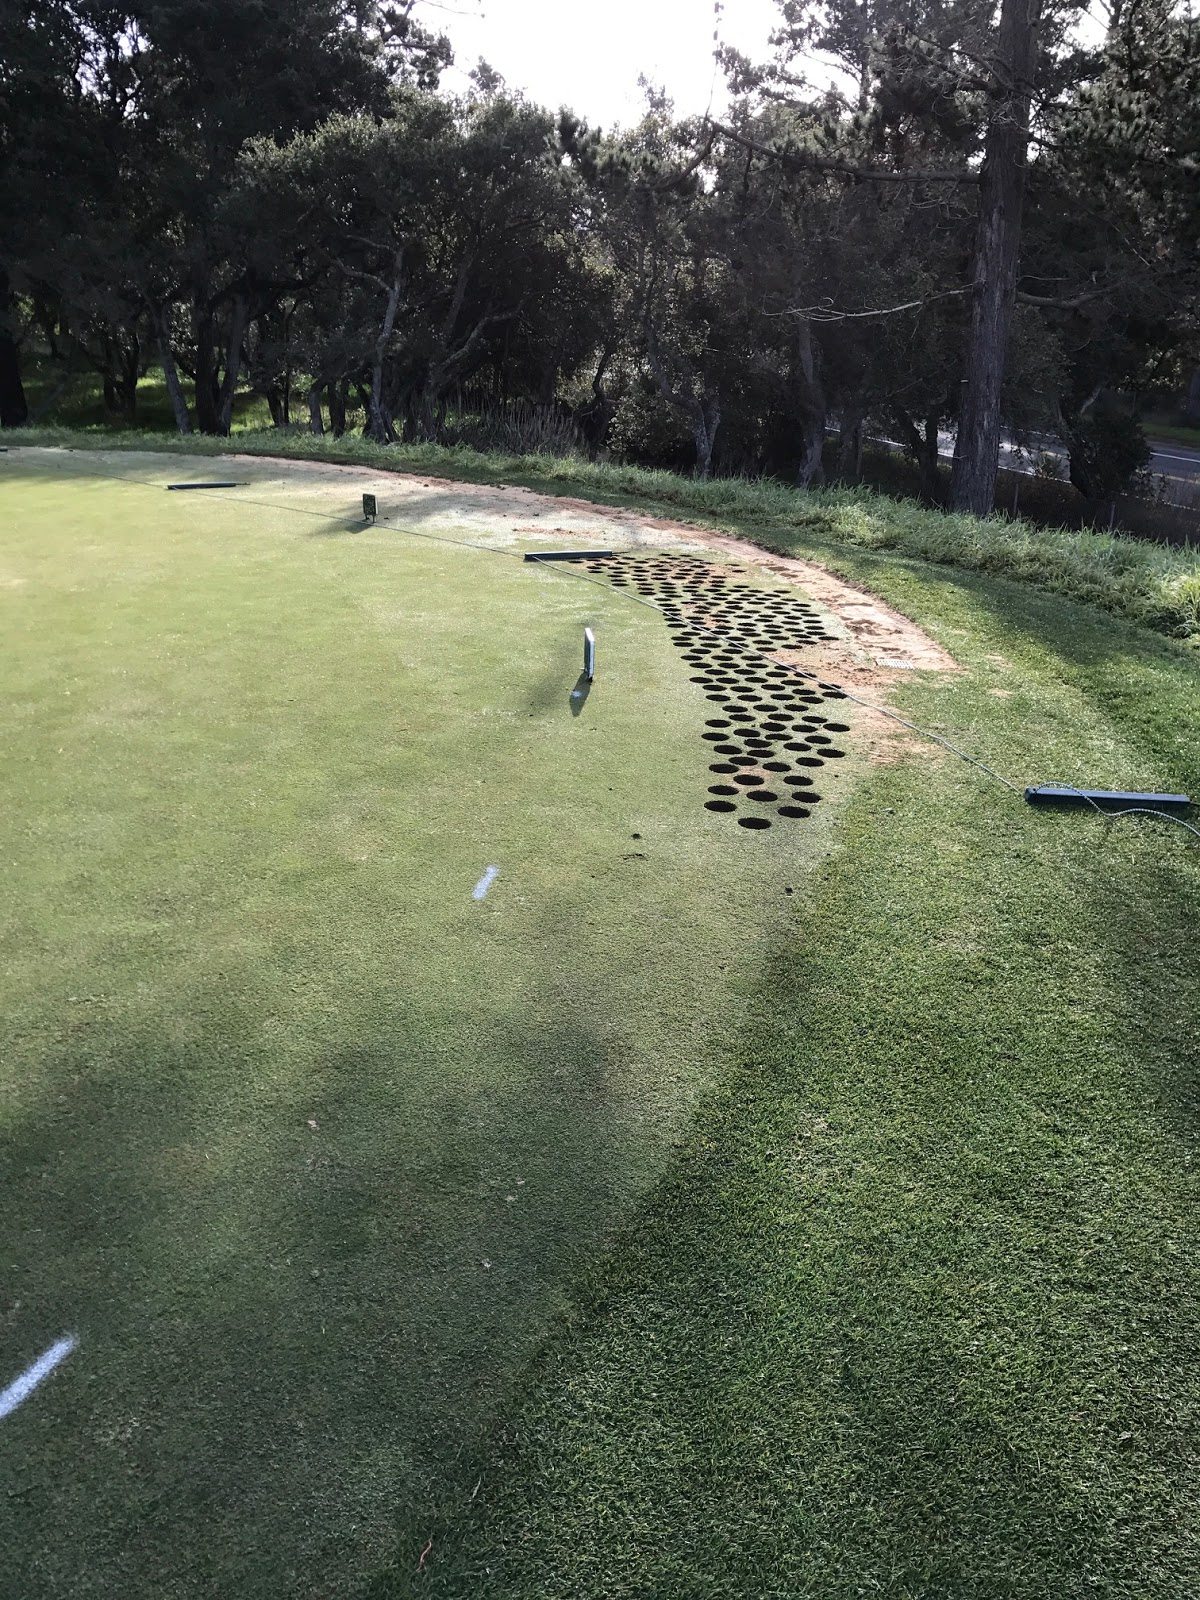 this past week some of our talented team led by our assistant superintendent blake tackled a sod job behind 7 green that we have had on our radar for quite - Golf Assistant Jobs